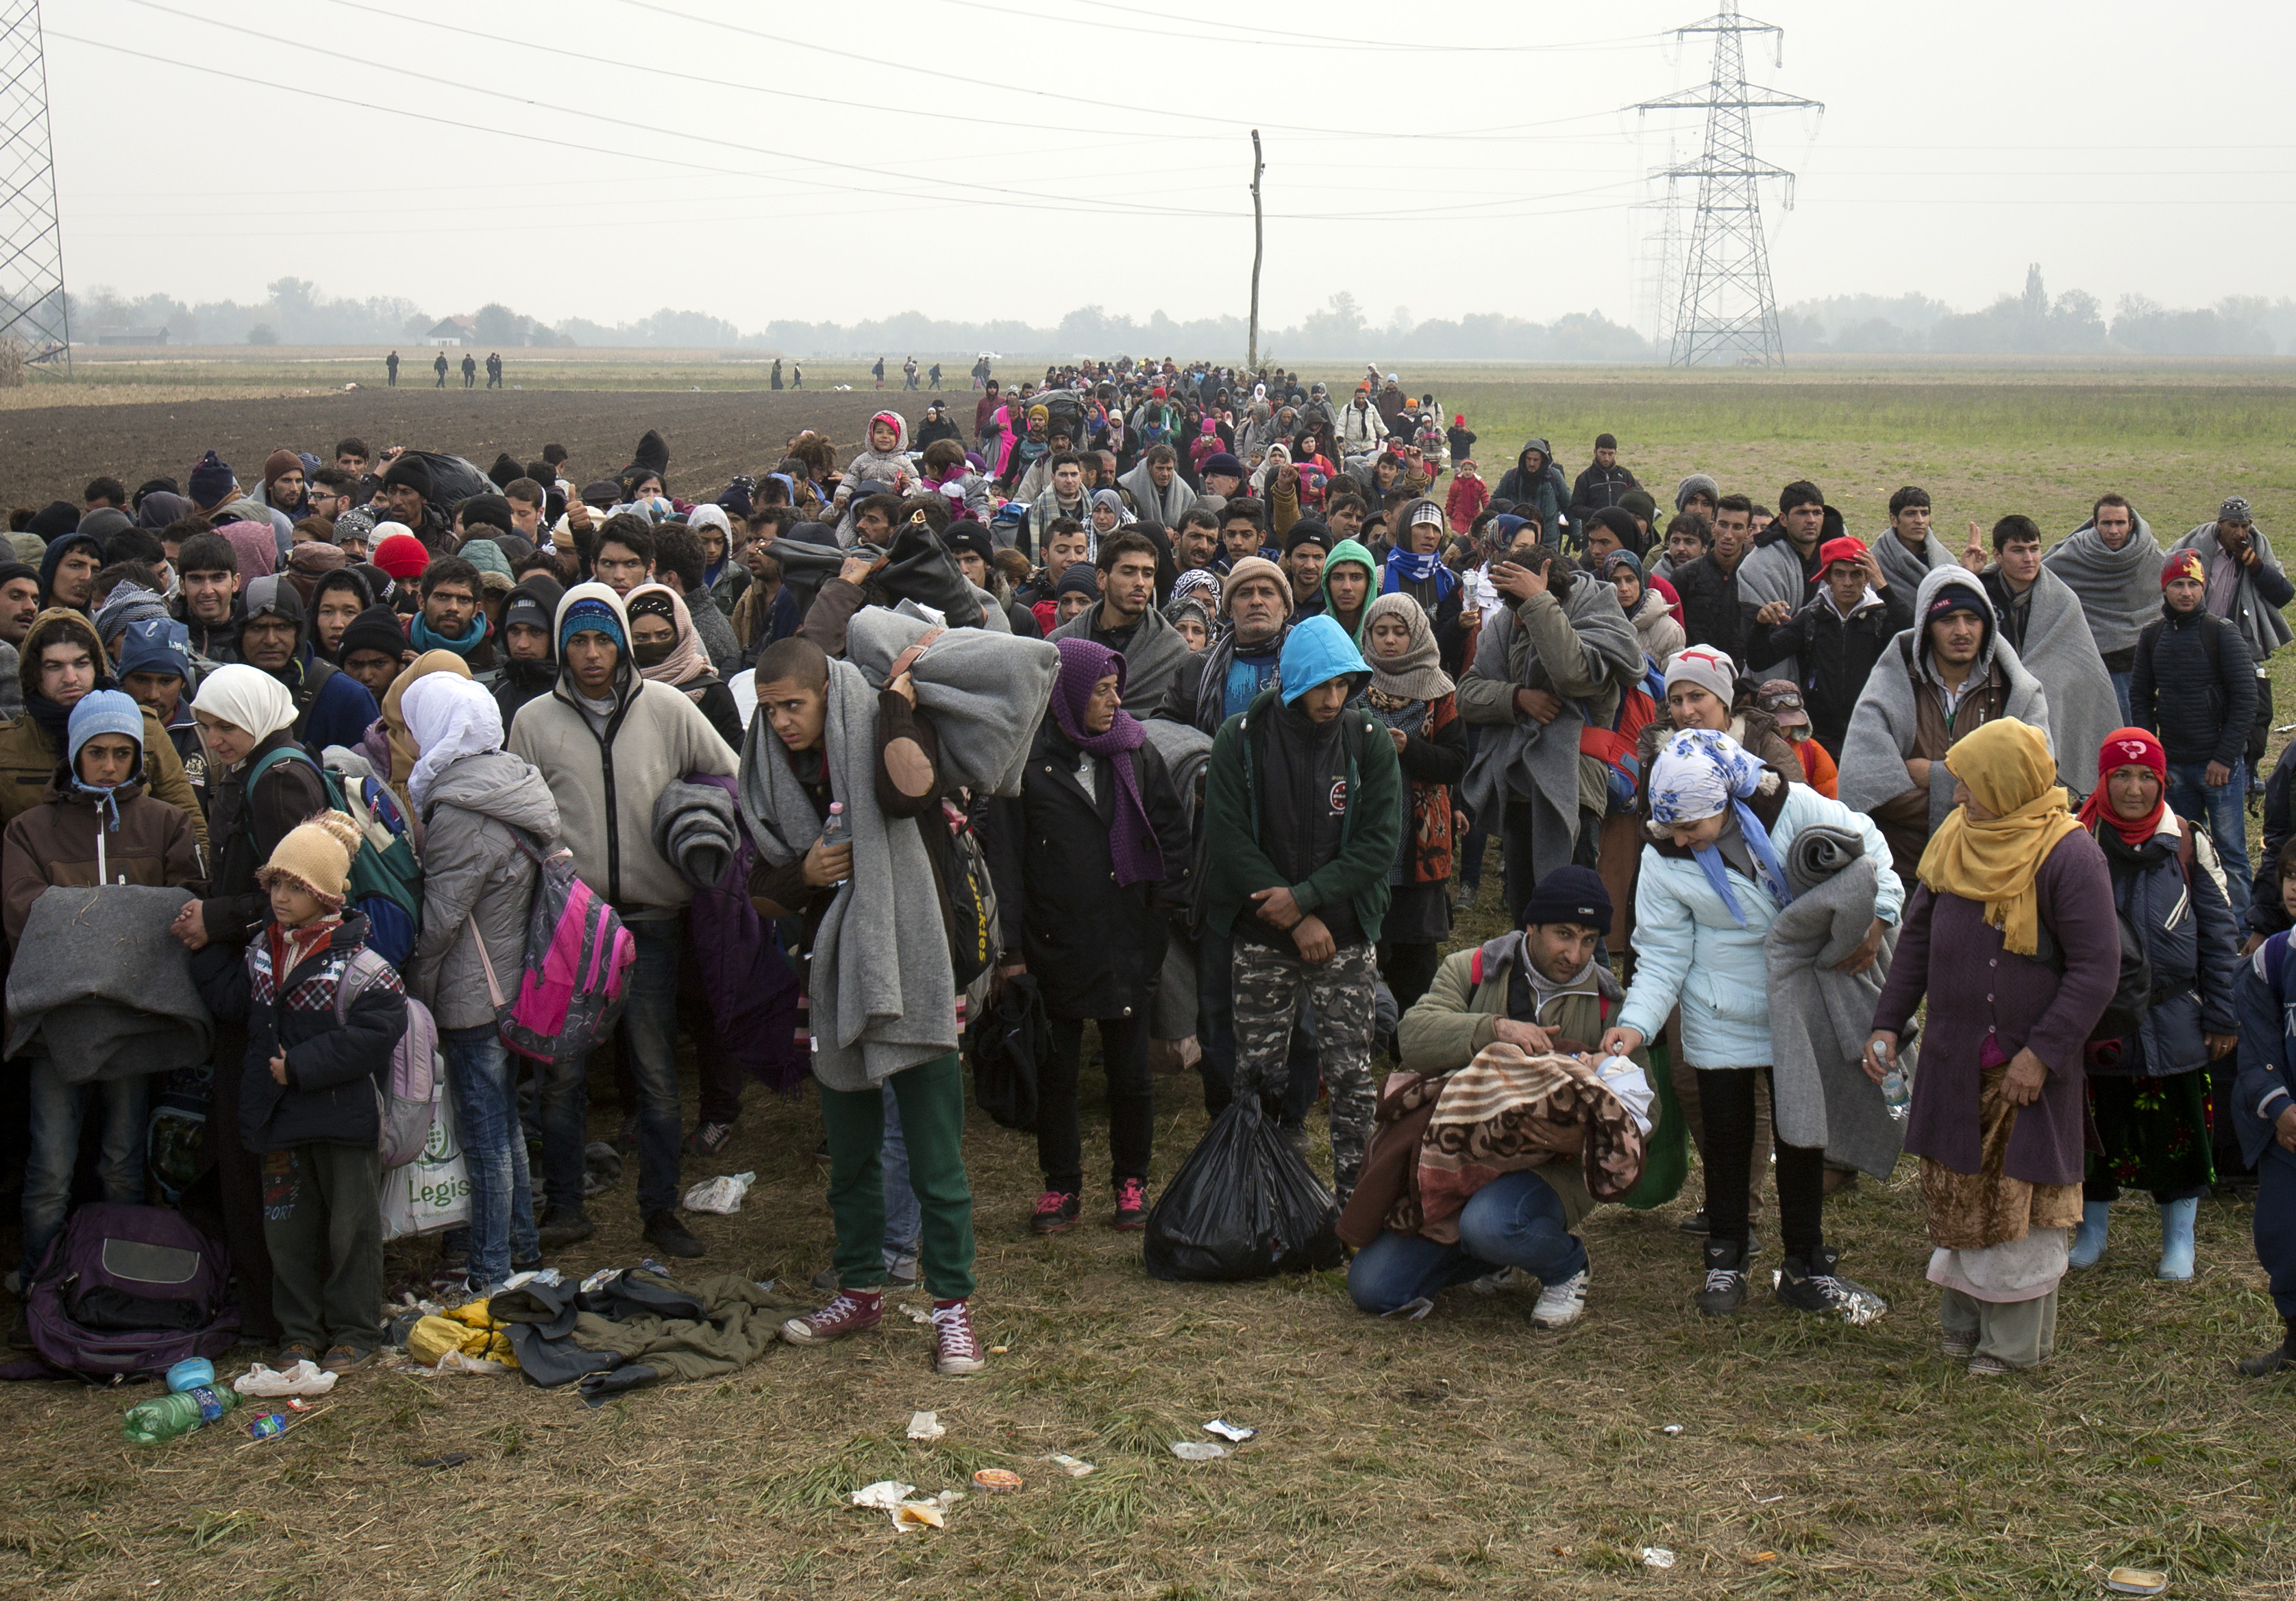 Migrants move through fields after crossing from Croatia, in Rigonce, Slovenia, Tuesday, October 27, 2015. Photo: AP